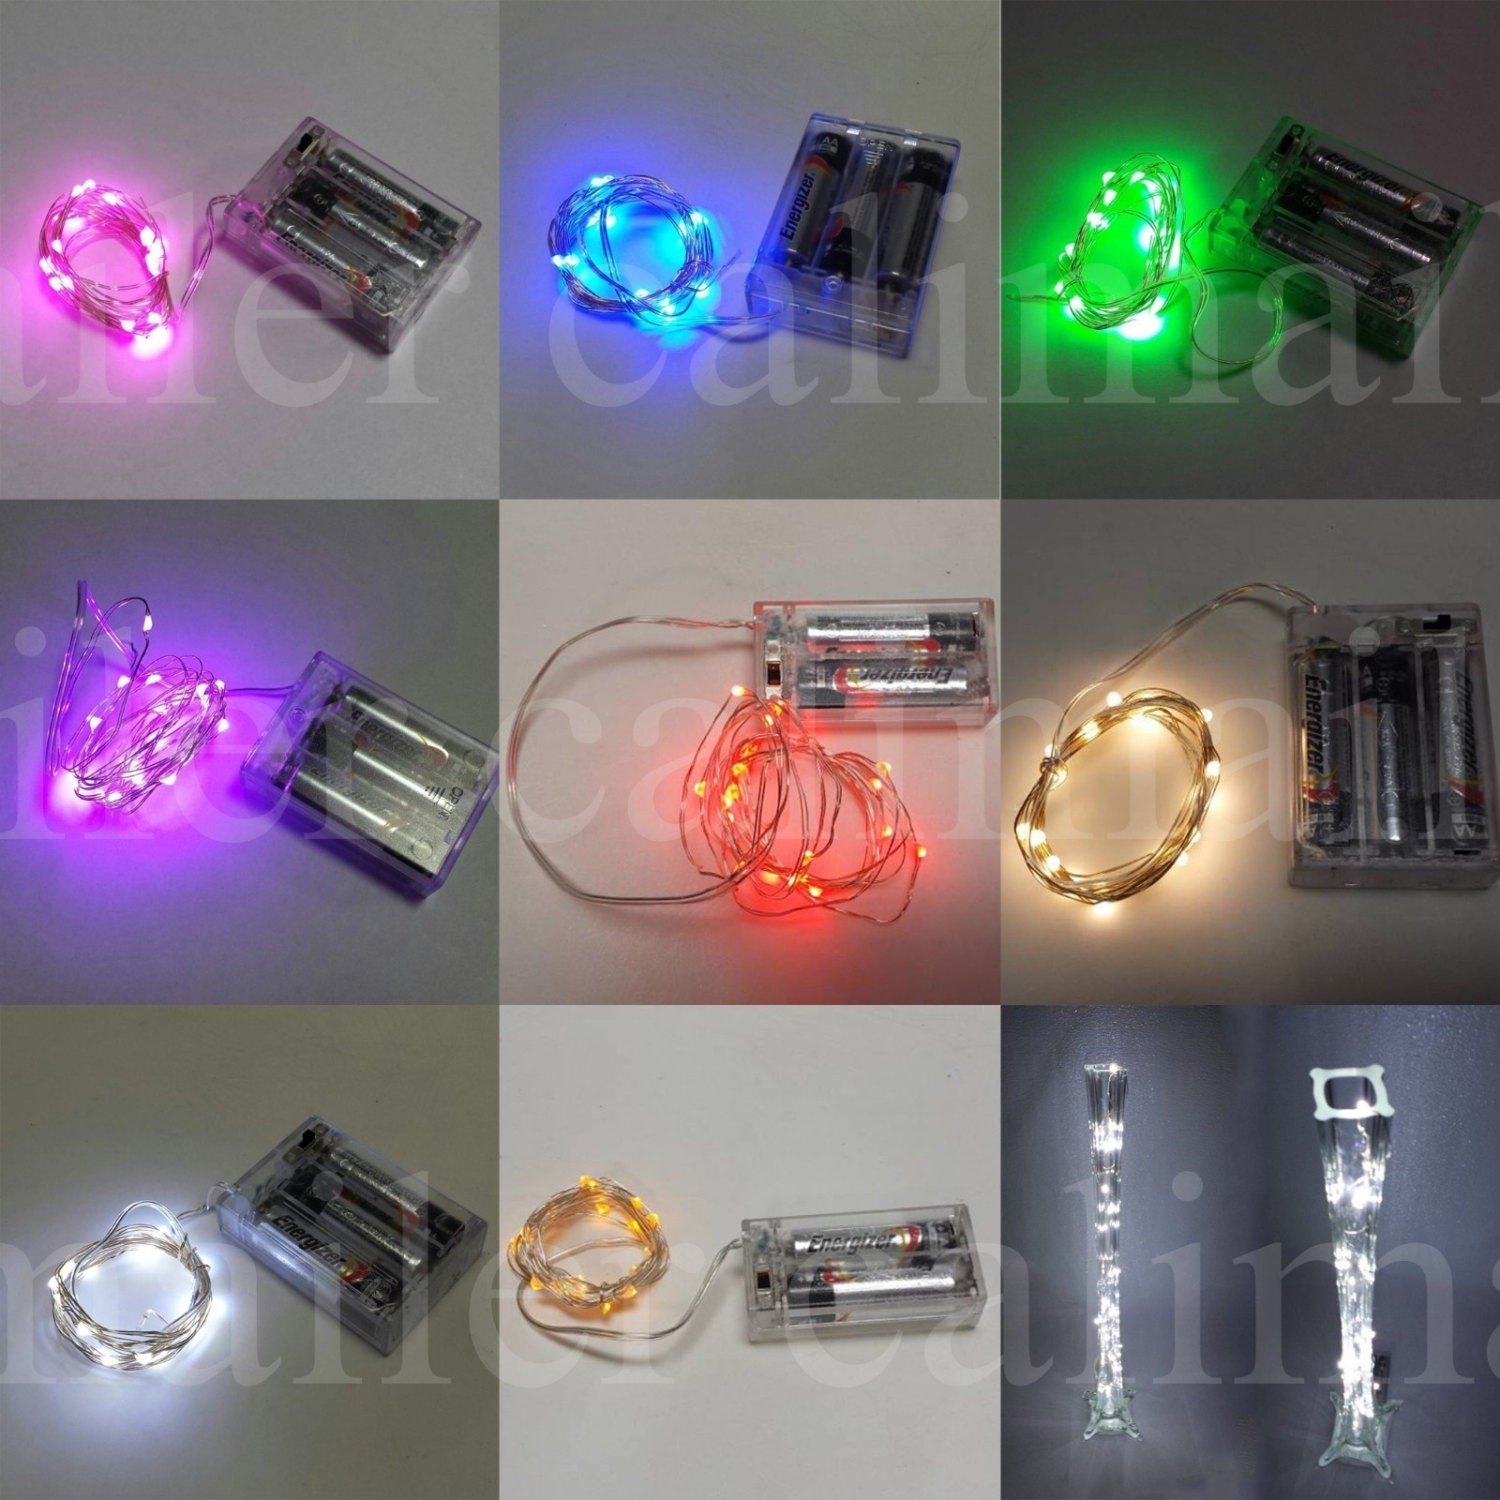 20 String Mini Lights : 20 pieces Mini String light 20 led 7 feet long Waterproof